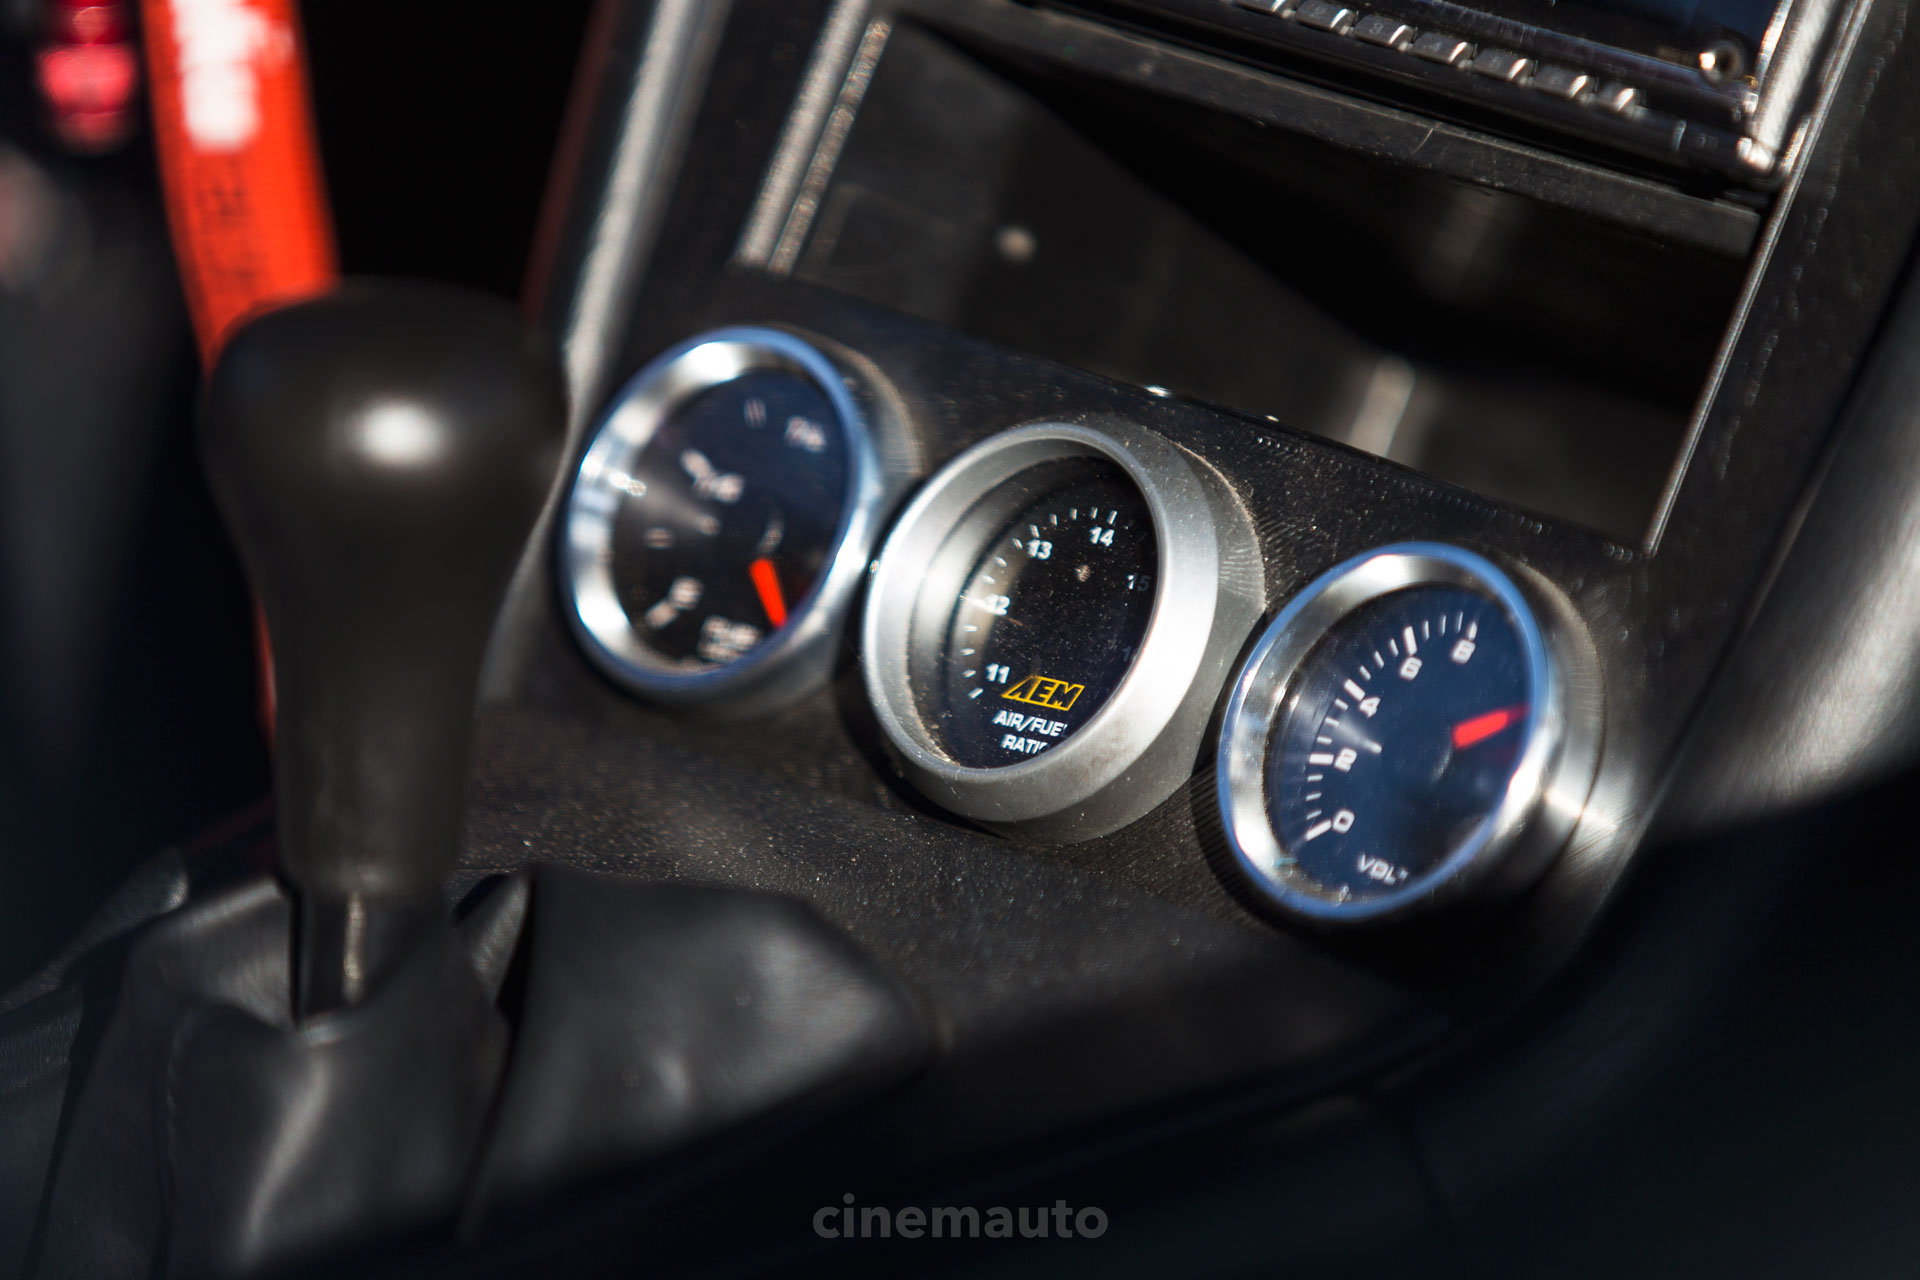 cinemauto-midwest-car-photography-jp7.jpg